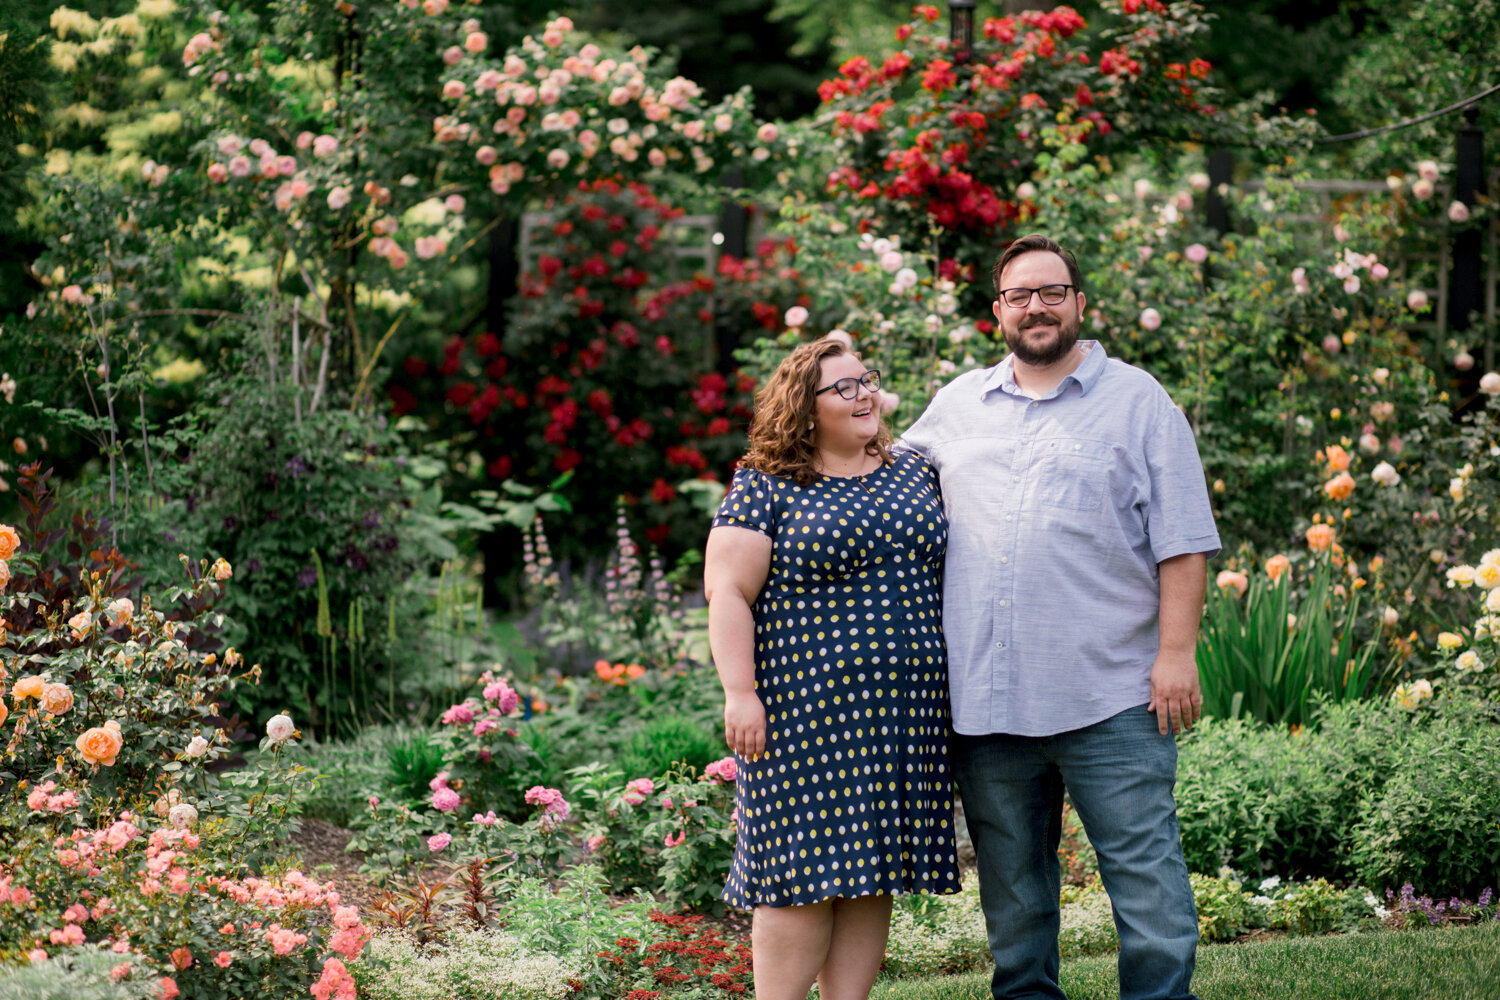 morris-arboretum-chestnut-hill-garden-engagement-session-philadelphia-wedding-photography-13.jpg